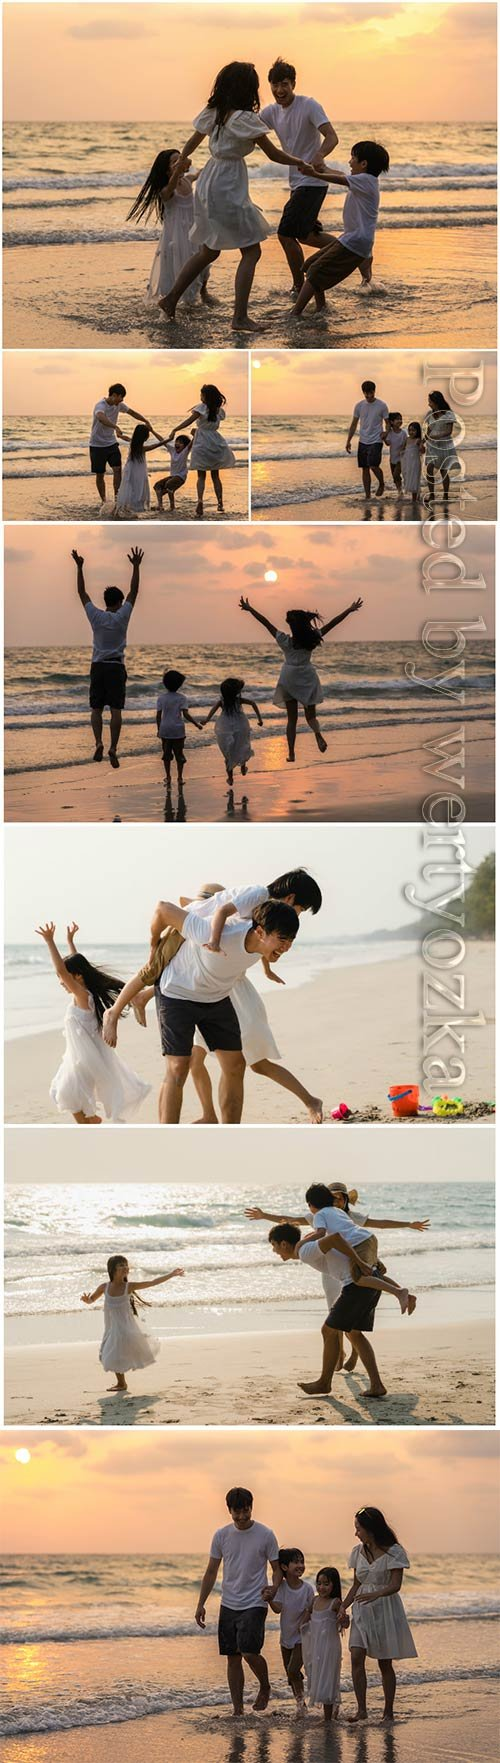 Happy family enjoy vacation on beach in evening